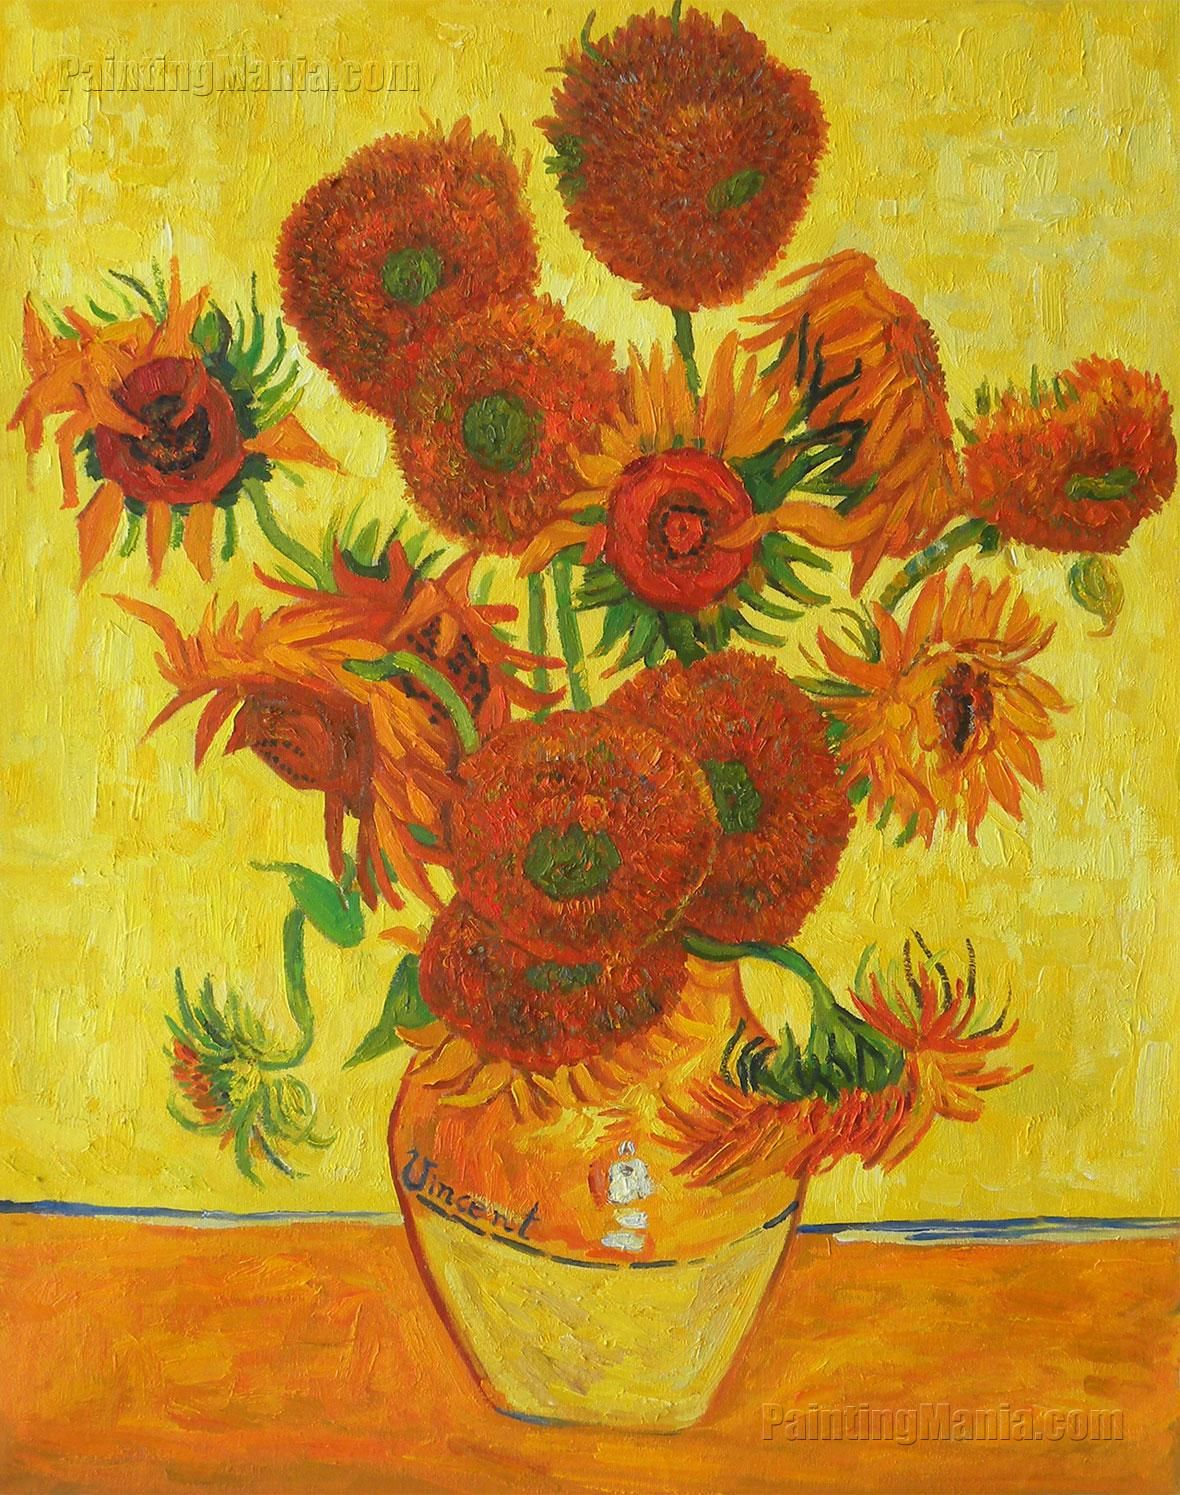 Vincent Van Gogh Paintings Sunflowers Quotsunflowers Quot By Vincent Van Gogh Art Pinterest